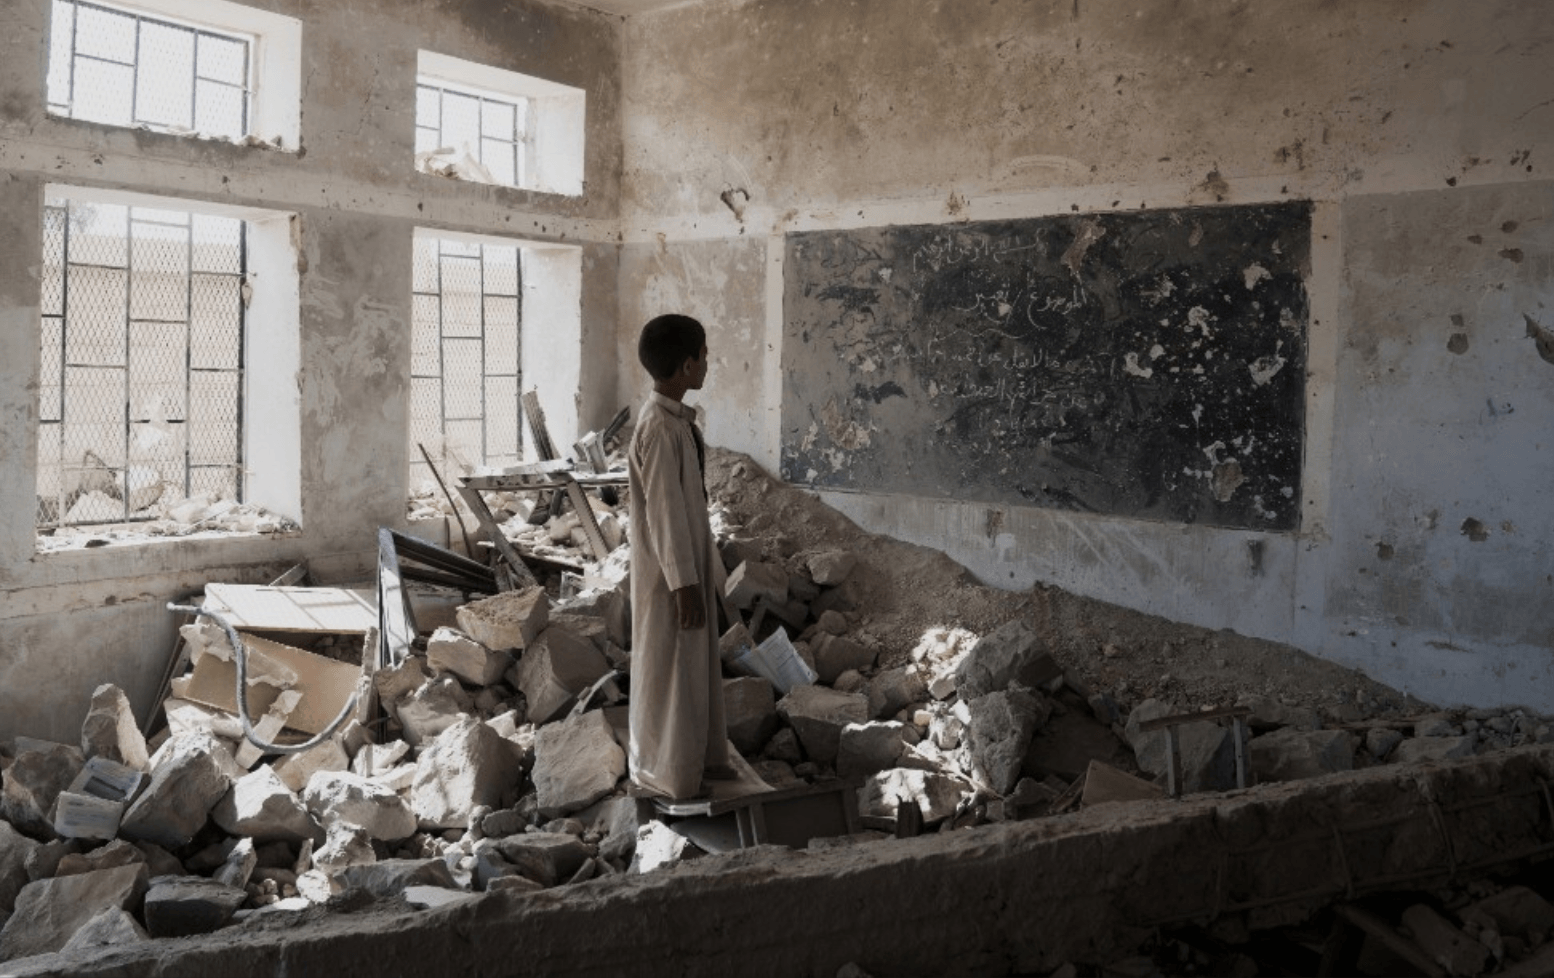 Poverty and Violent Extremism in Yemen